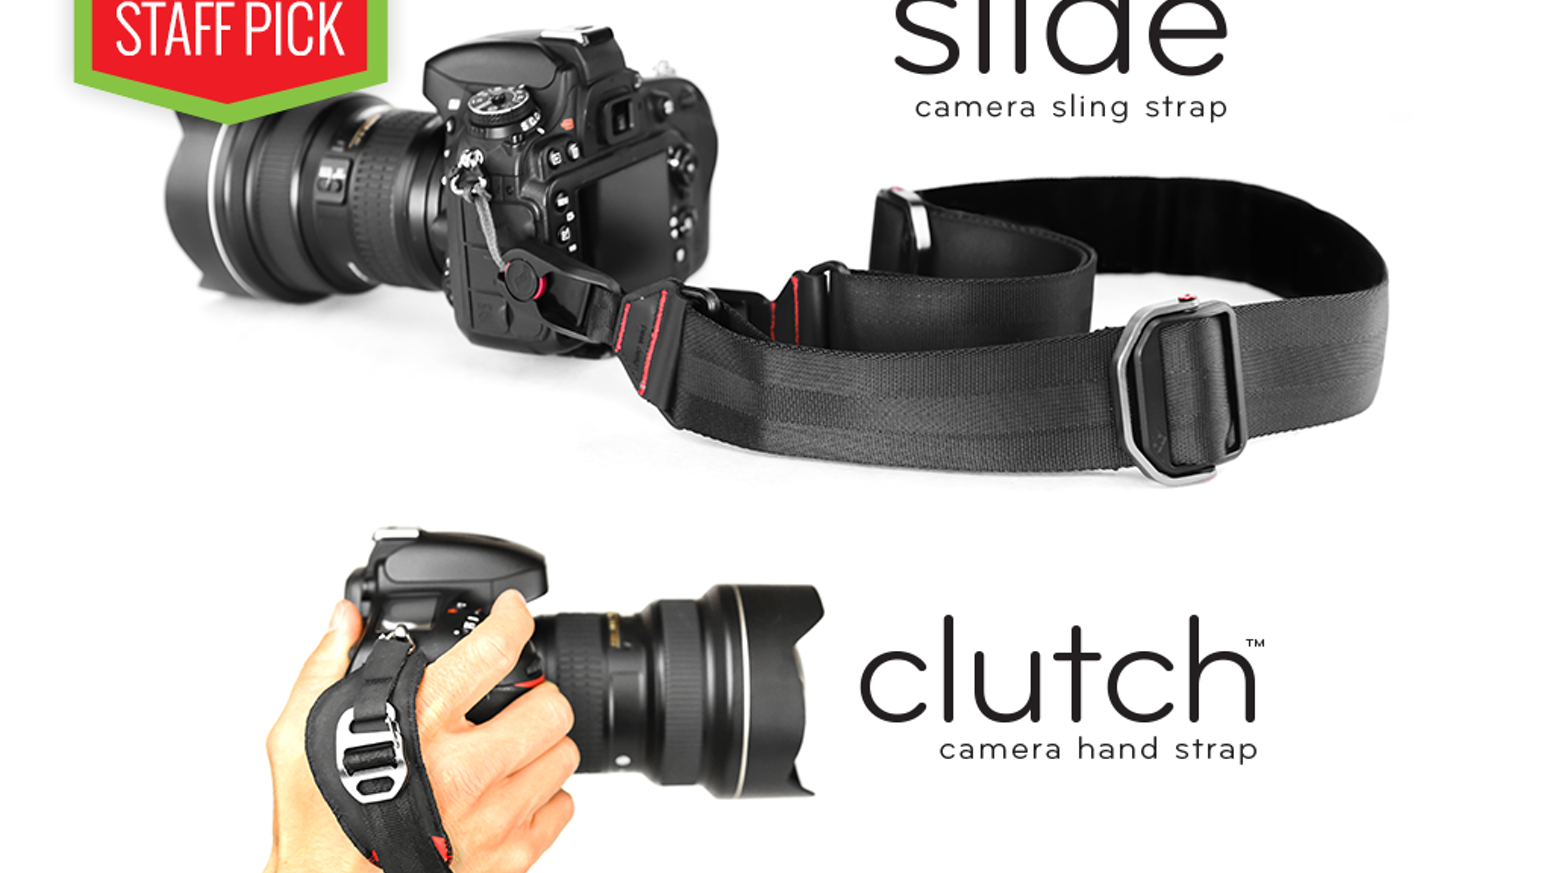 A camera sling strap and hand strap that are quick-connecting, quick-adjusting, comfortable, versatile and classically beautiful.